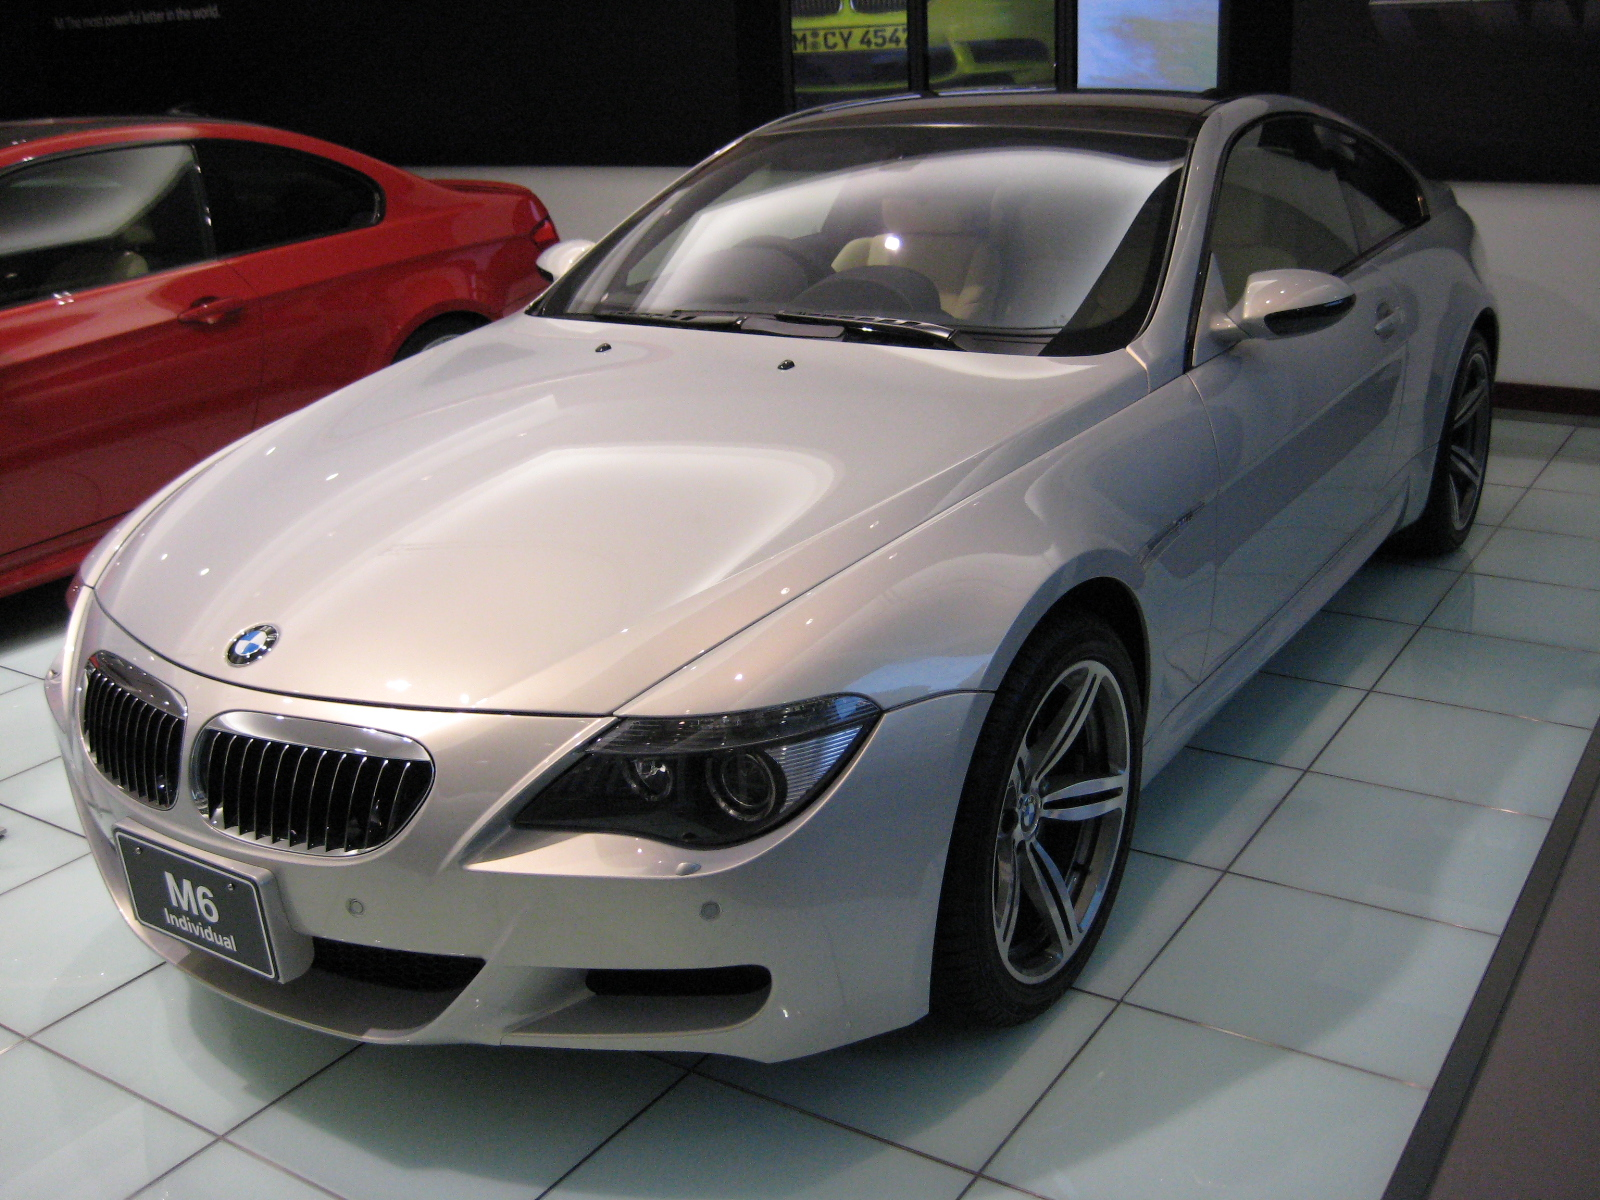 File:BMW E63 M6 Coupé.JPG - Wikimedia Commons